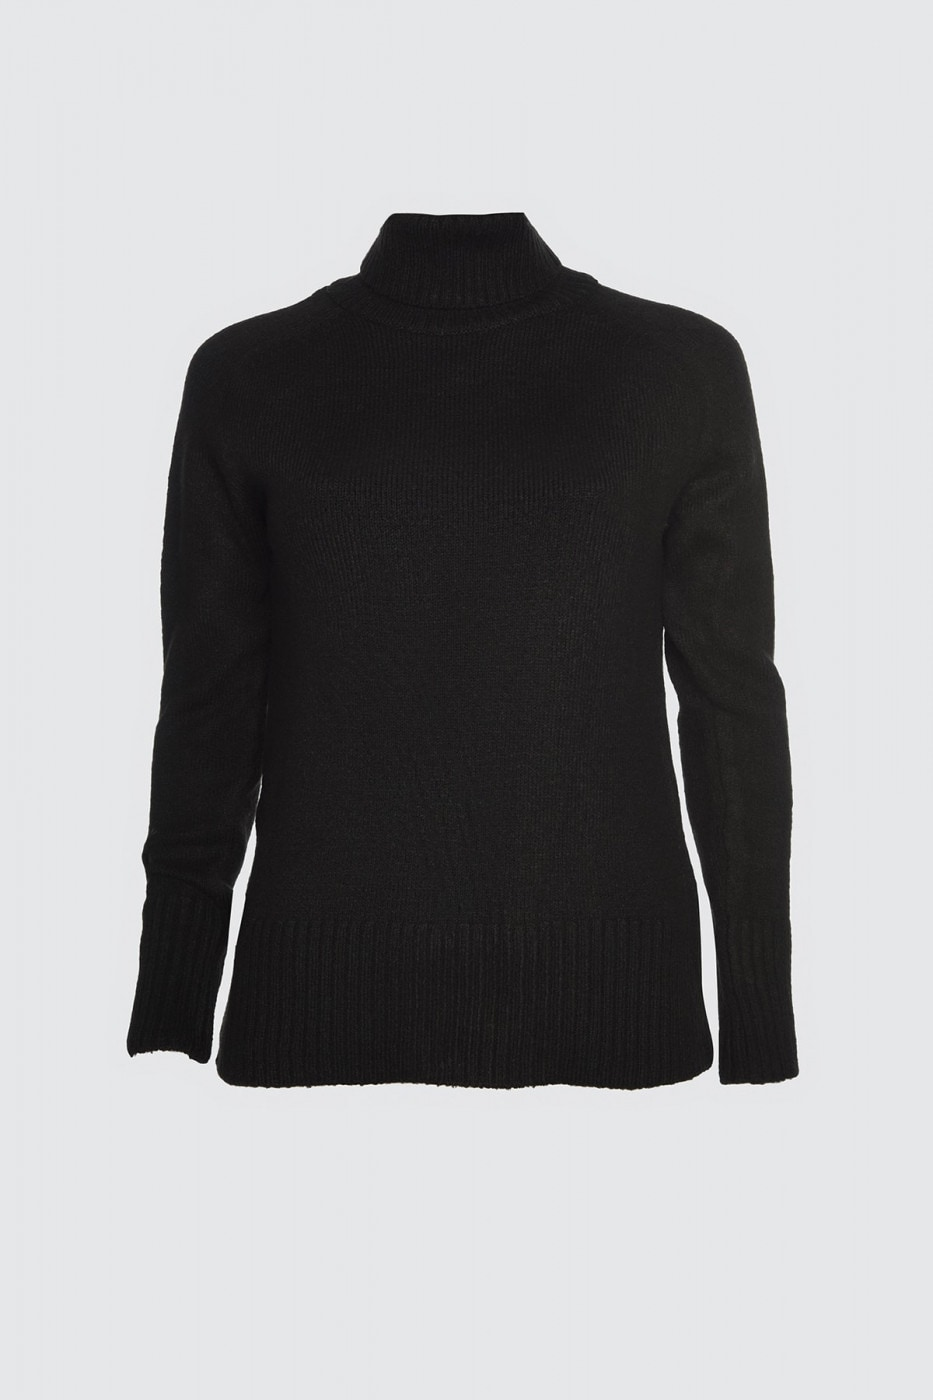 Trendyol Black Throat Knit Sweater